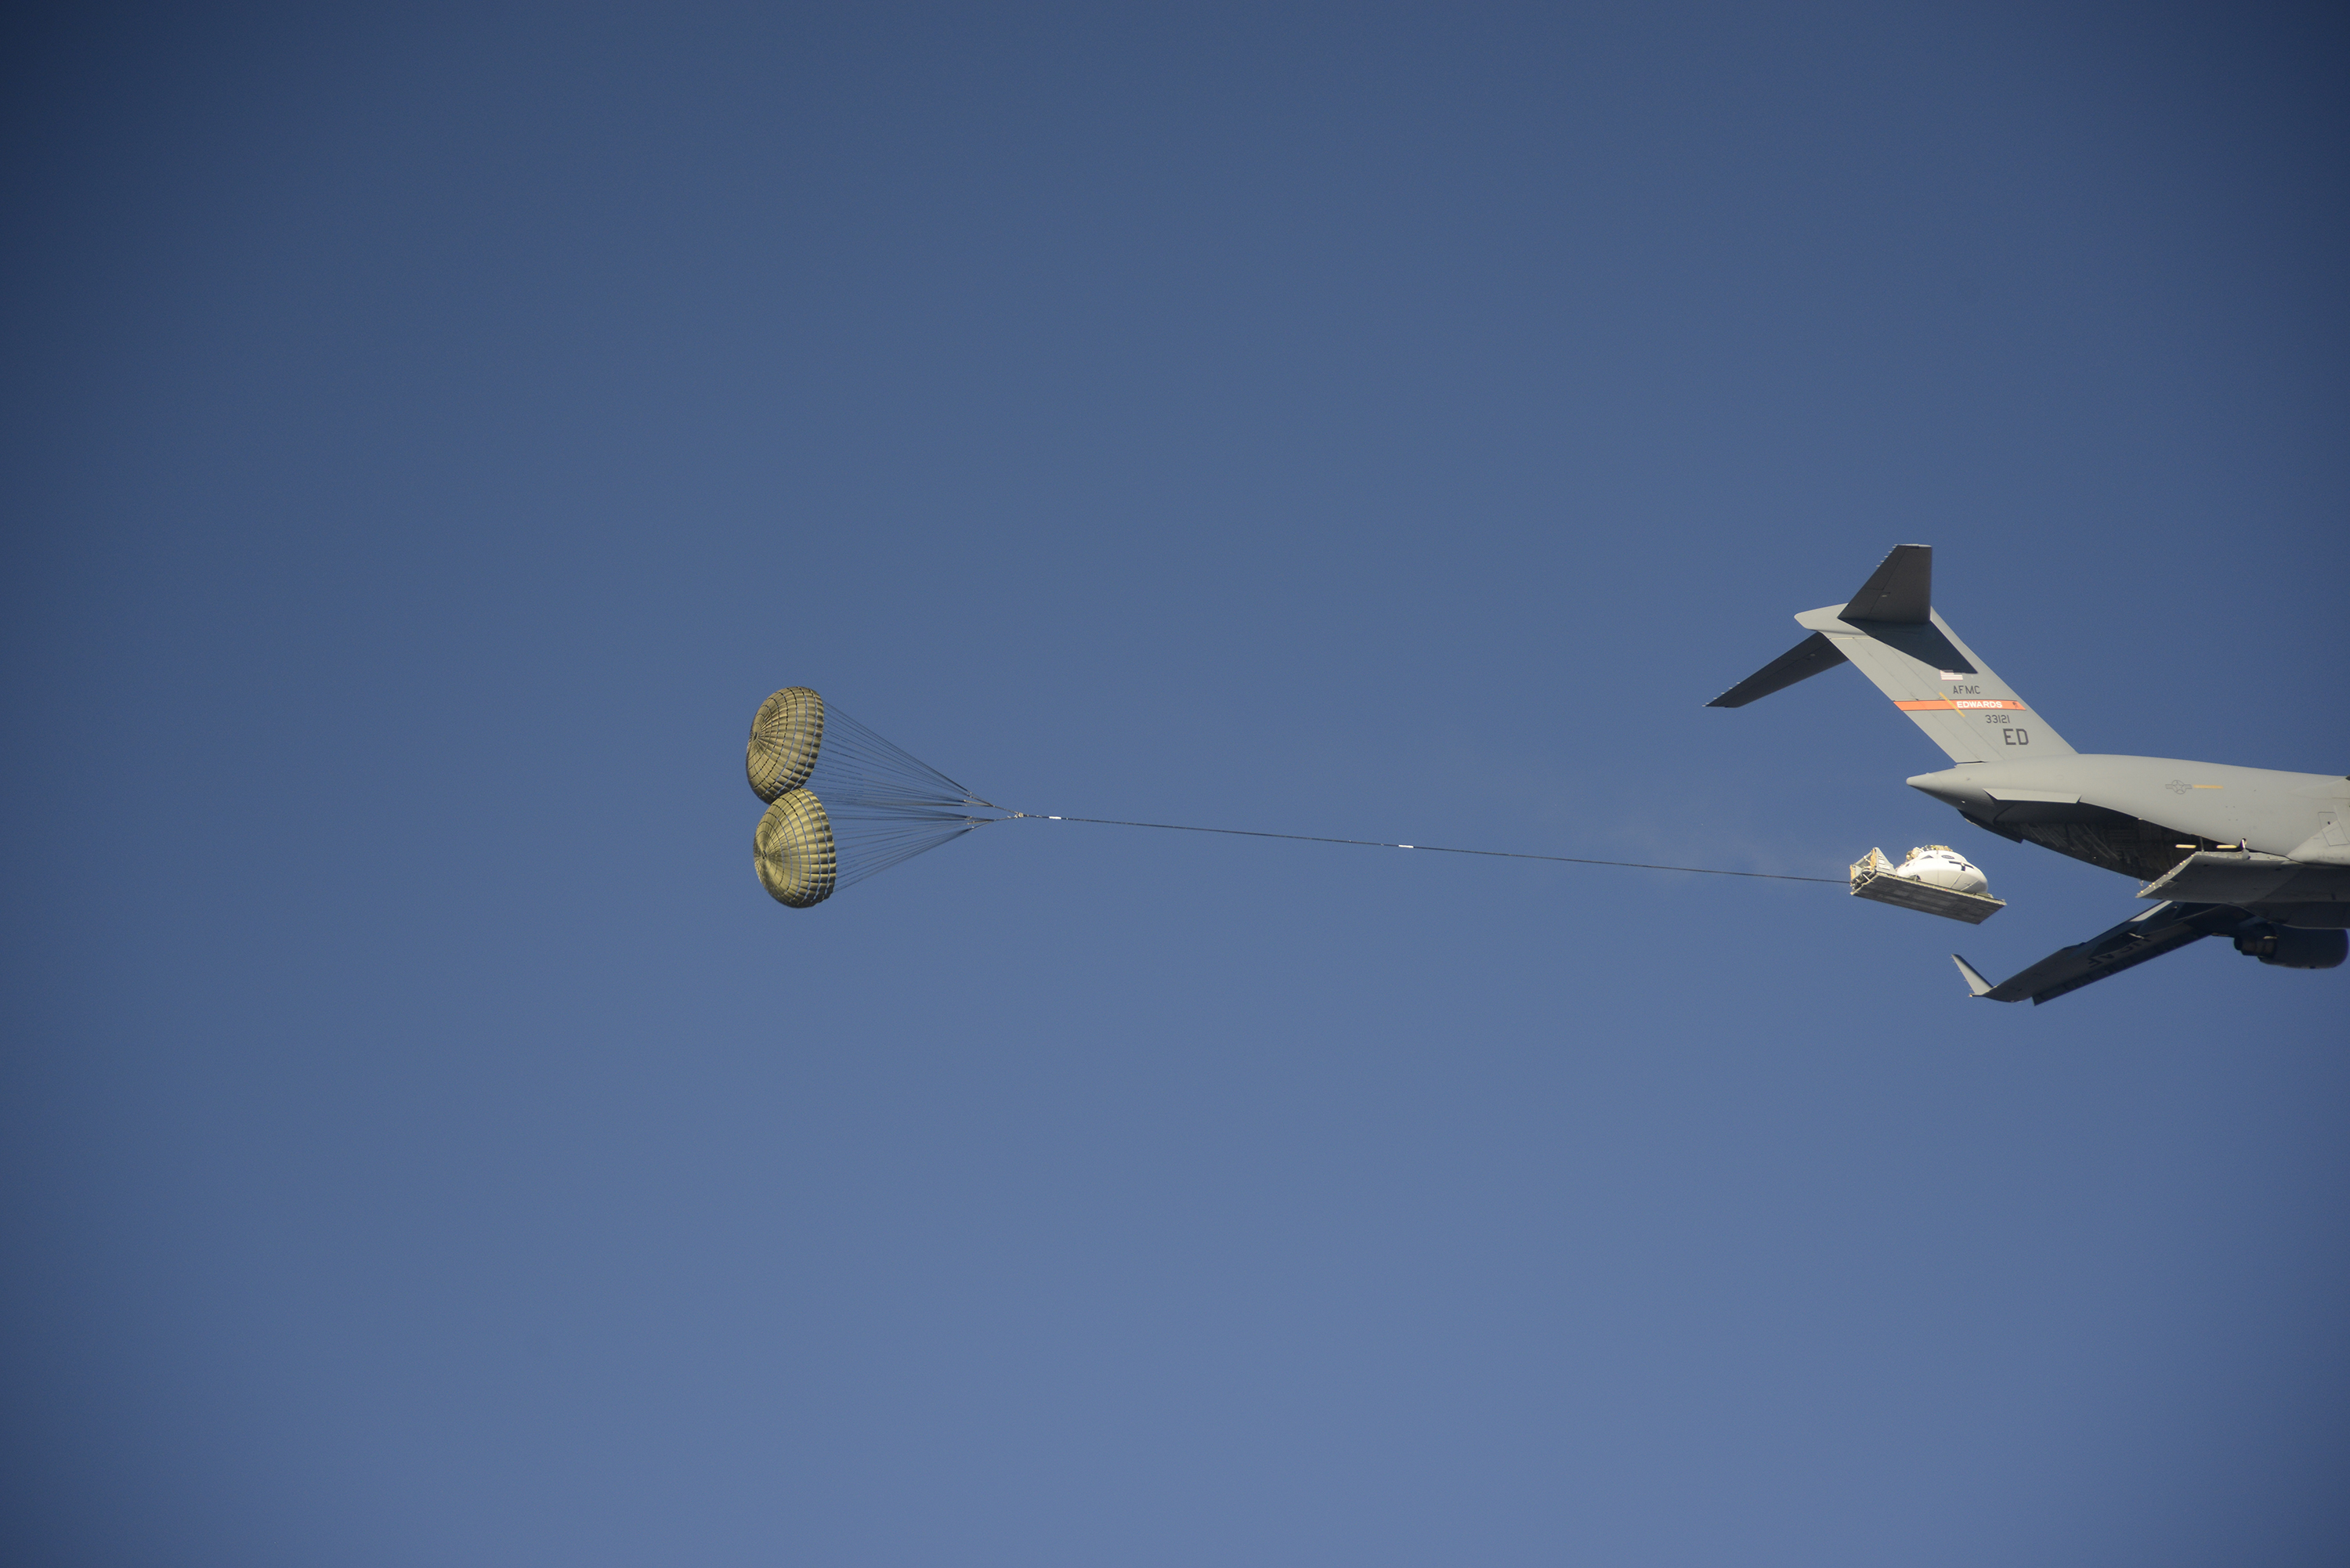 raft parachute nasa - photo #34